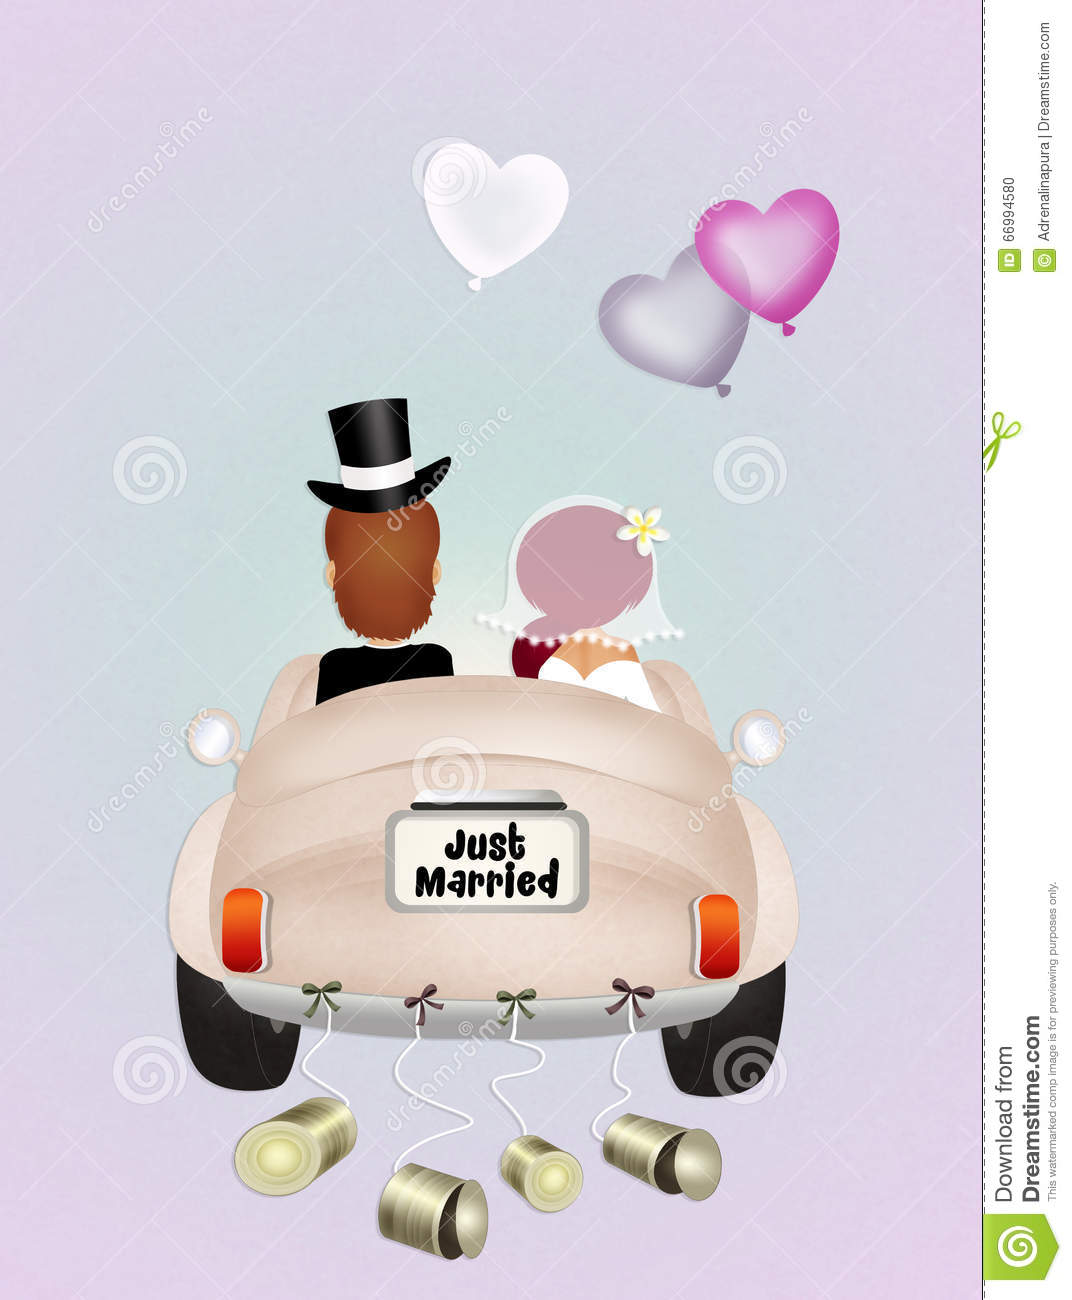 Funny Wedding car stock illustration Illustration of